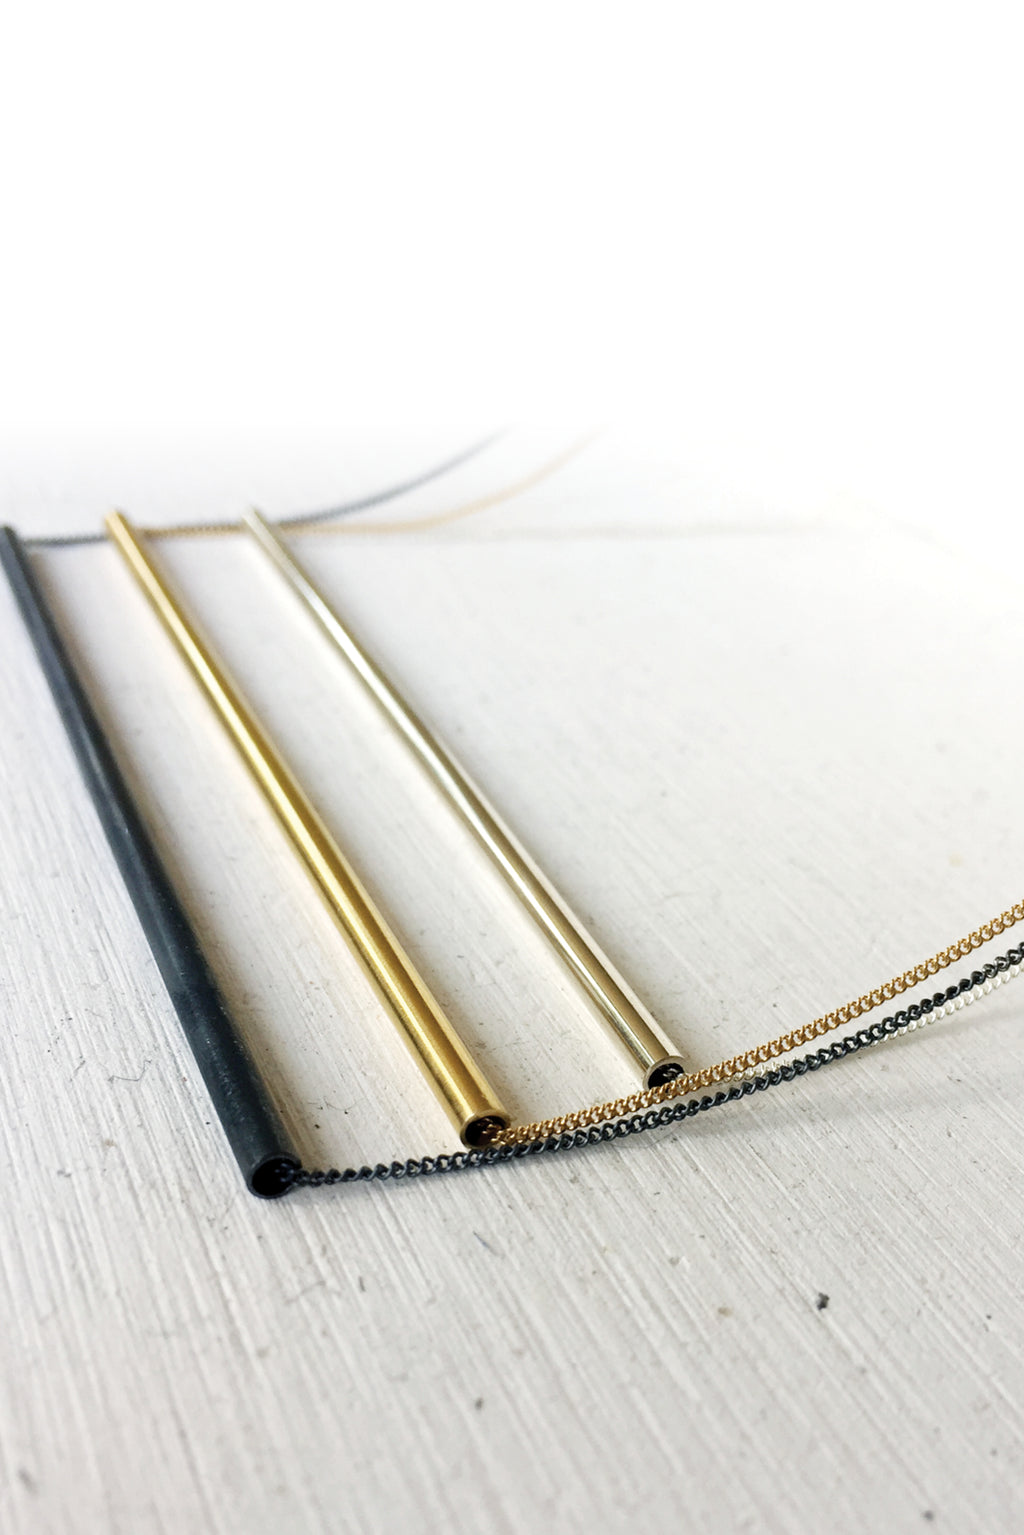 Necklace Silver Lining // Sterling Silver